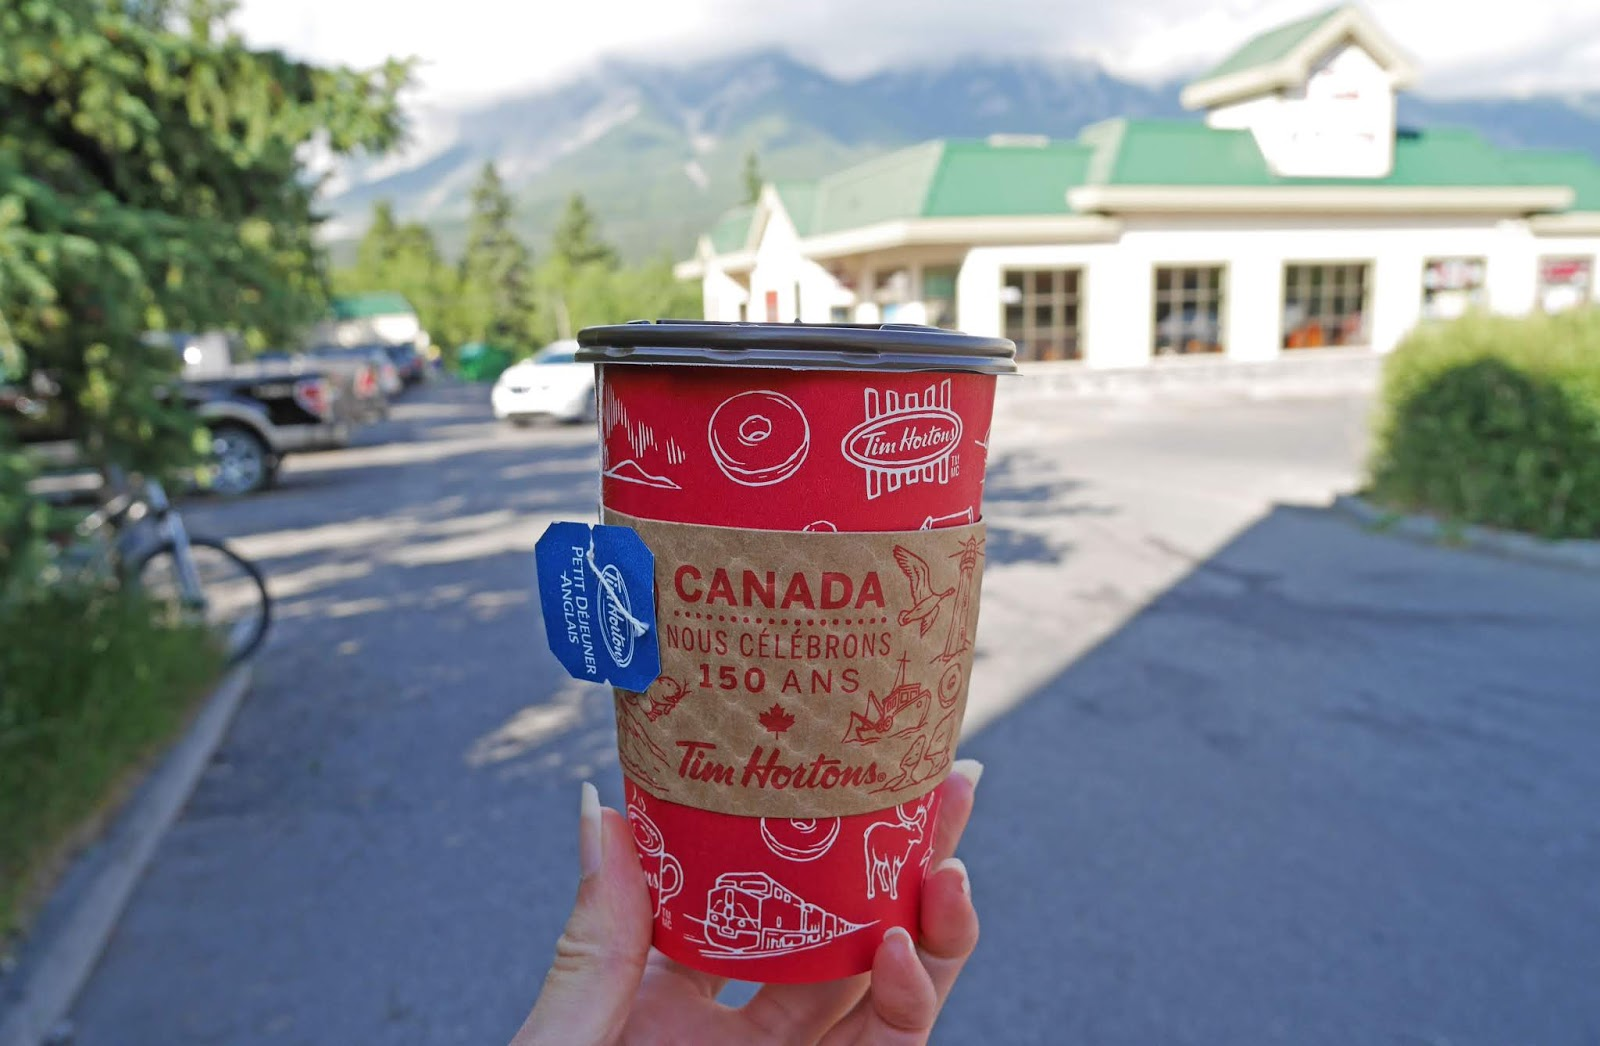 A cup of tea at Tim Horton's in Banff National Park, Alberta